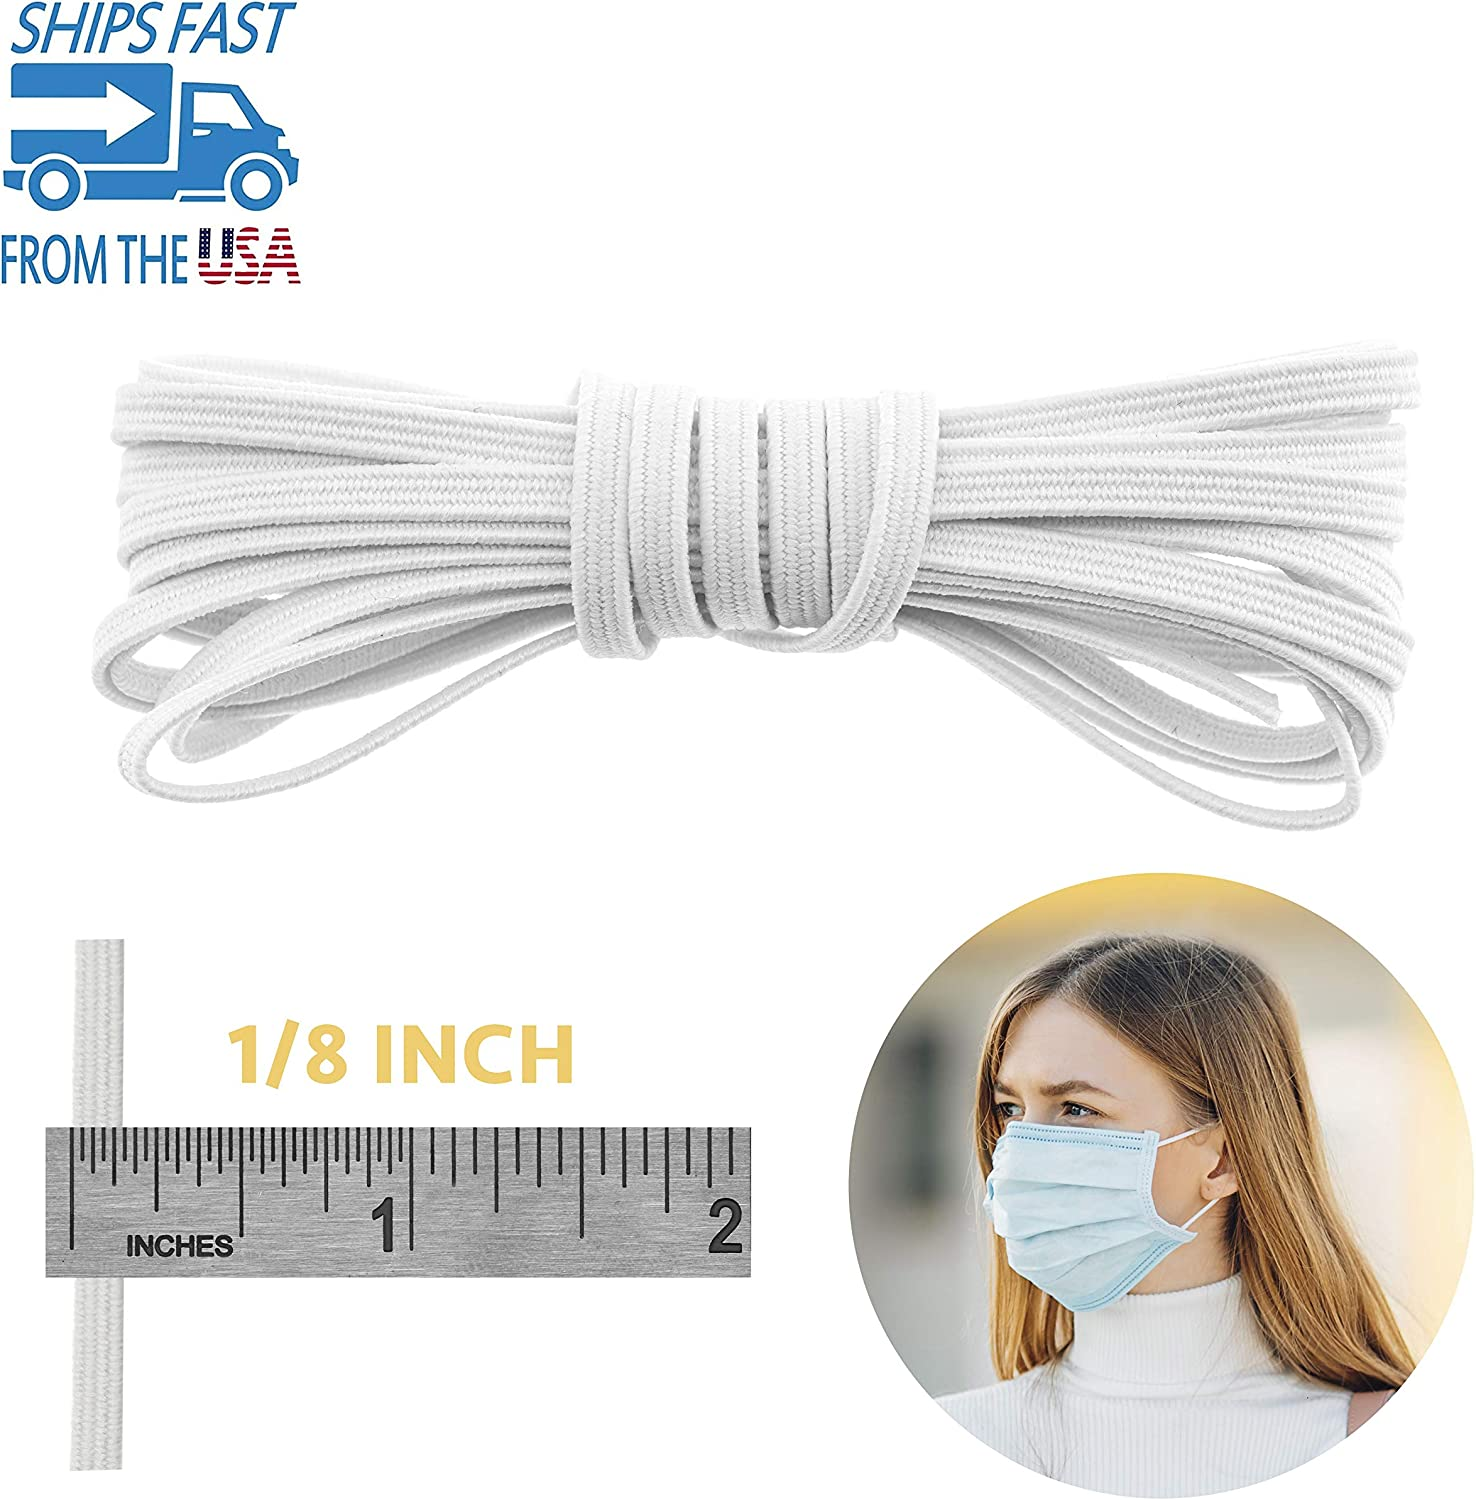 Elastic Bands Craft Flat Cord Rope Braided Stretch Strap 10//20//30 Yards-1//8 /&1//4 Inch Knit String Bungee Spool for Sewing